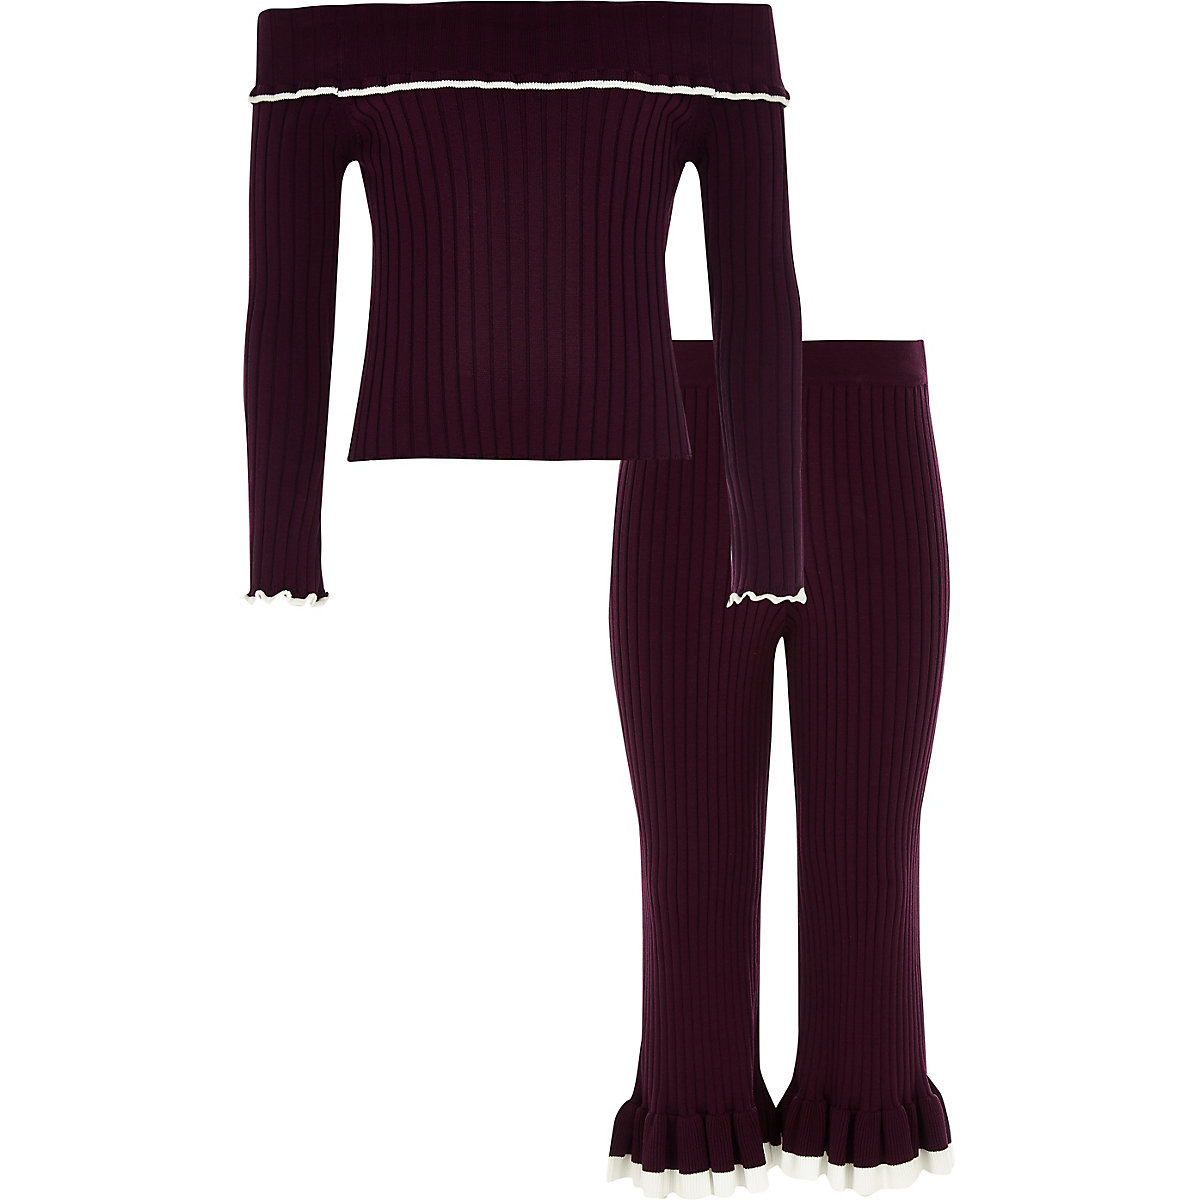 Girls dark red knit ribbed bardot top outfit